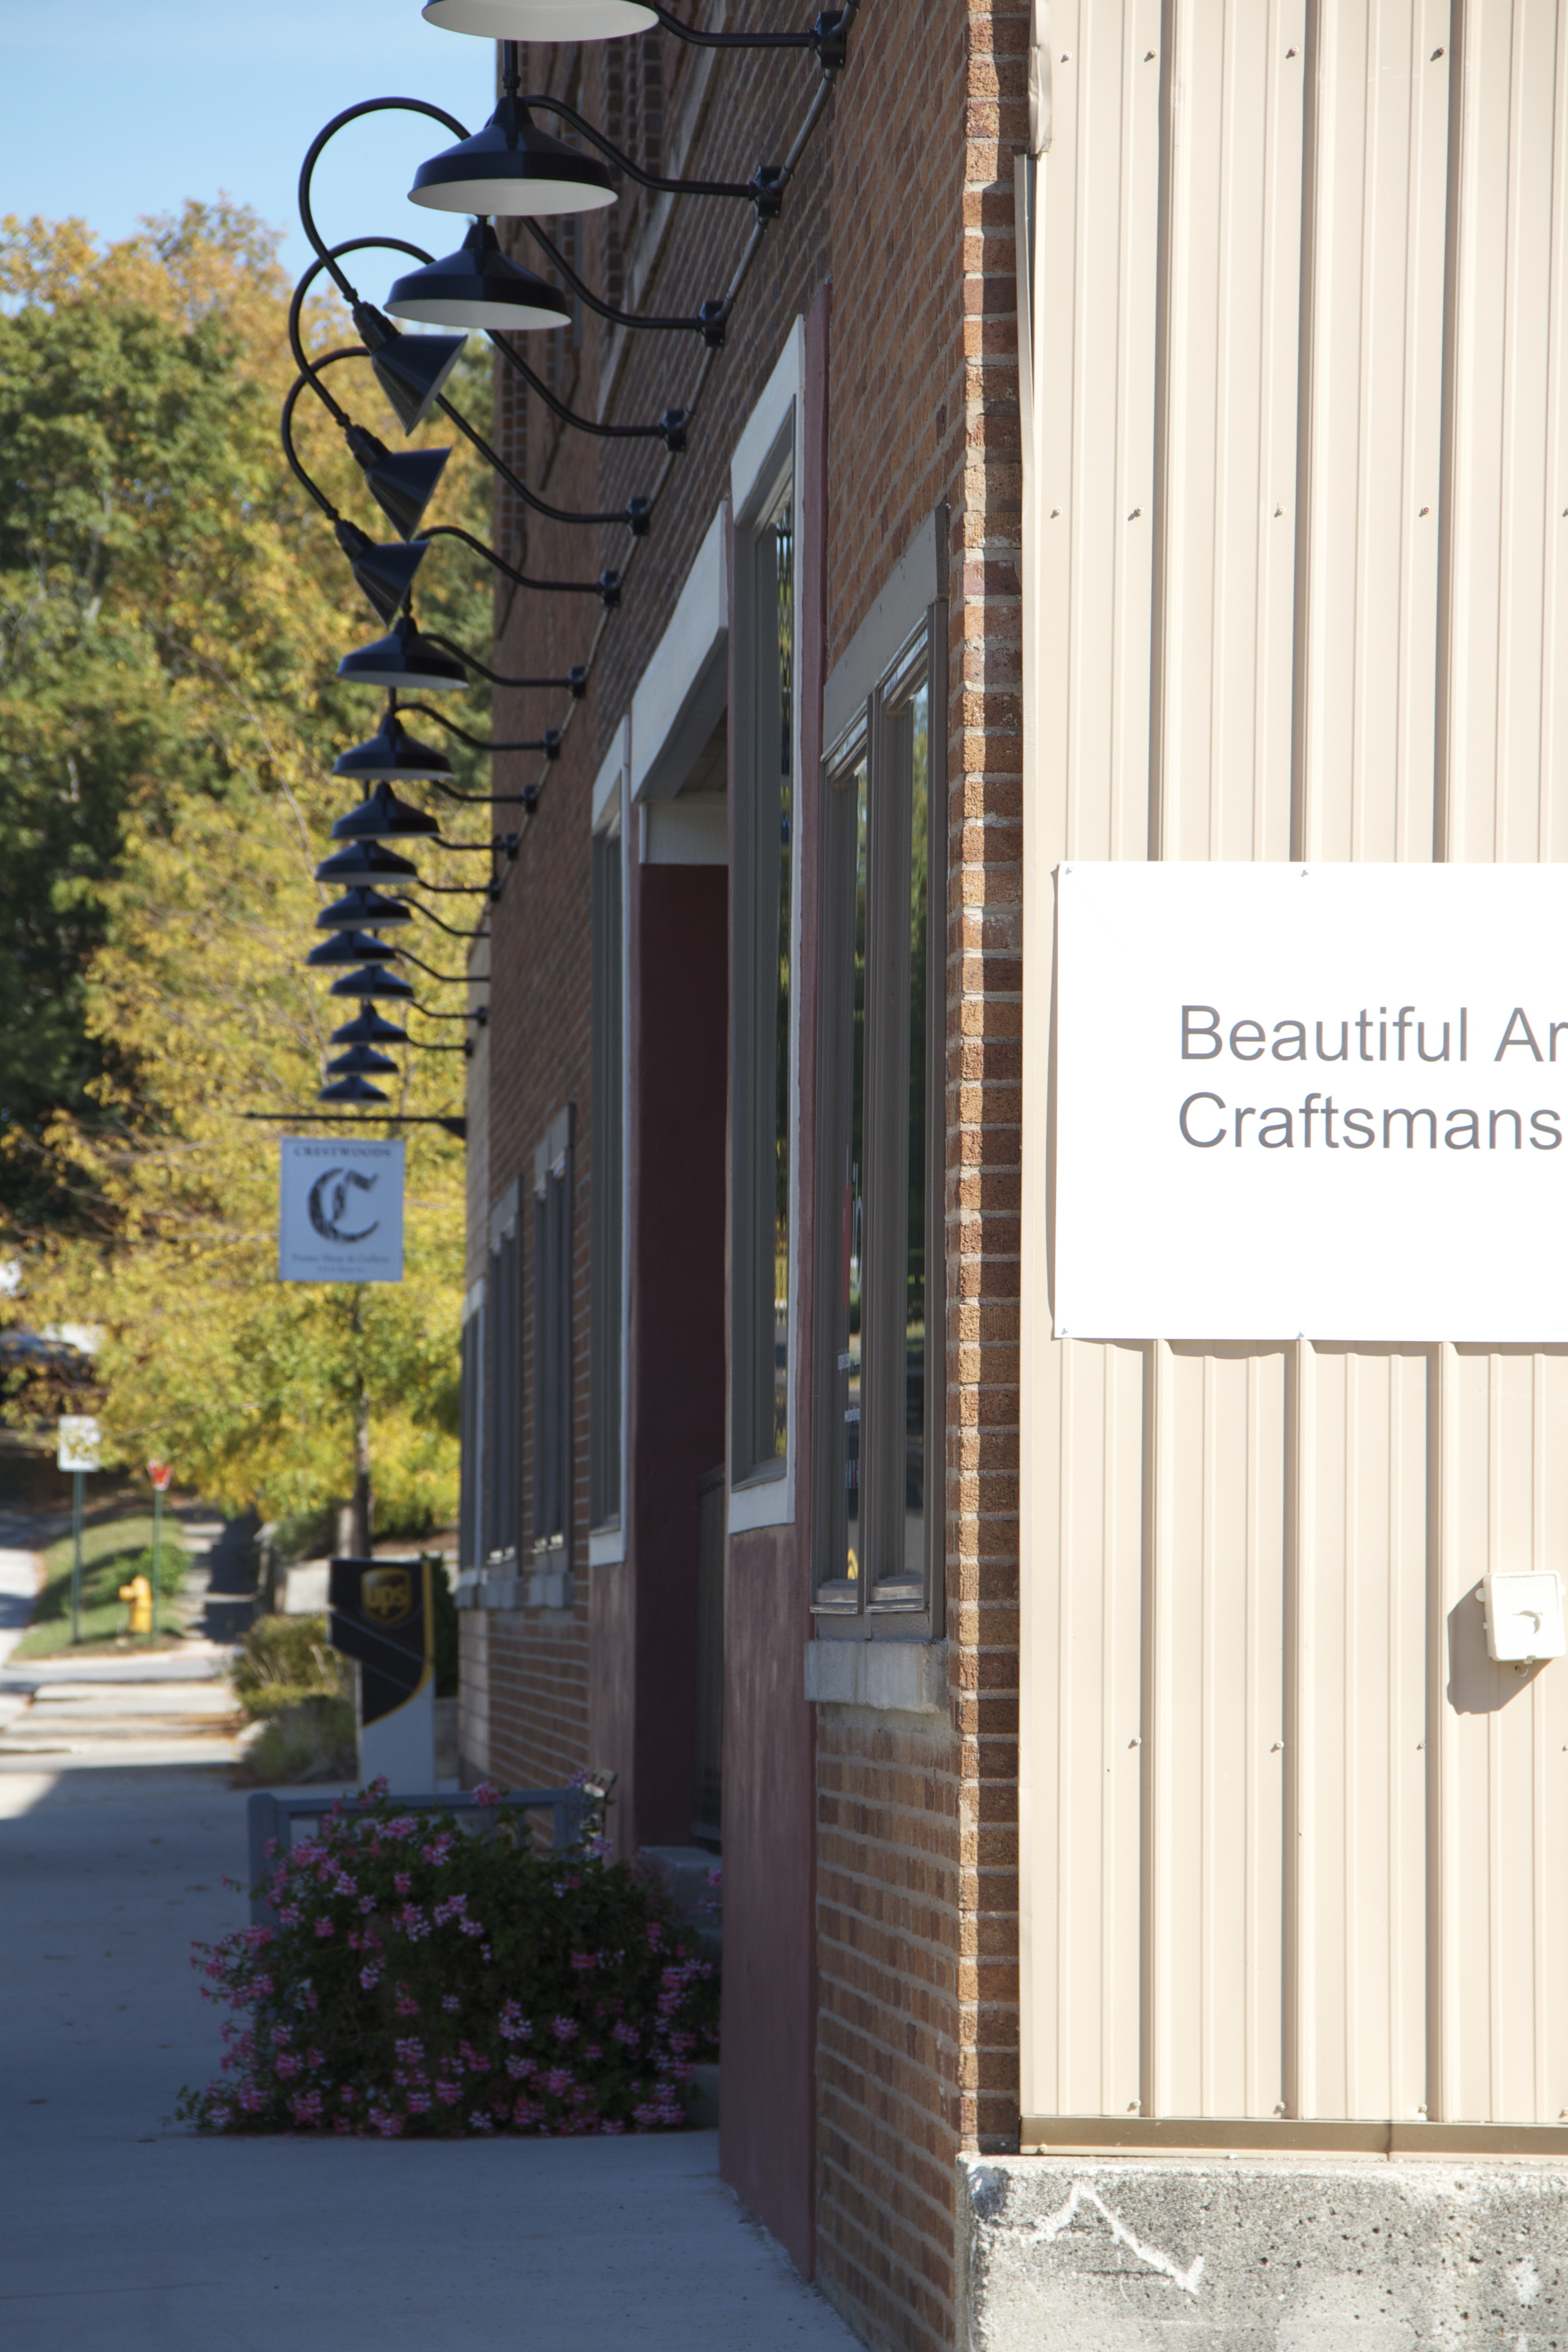 Next door neighbors--the Coil Factory which features Crestwood Galleries and its small town service with big city sophistication.